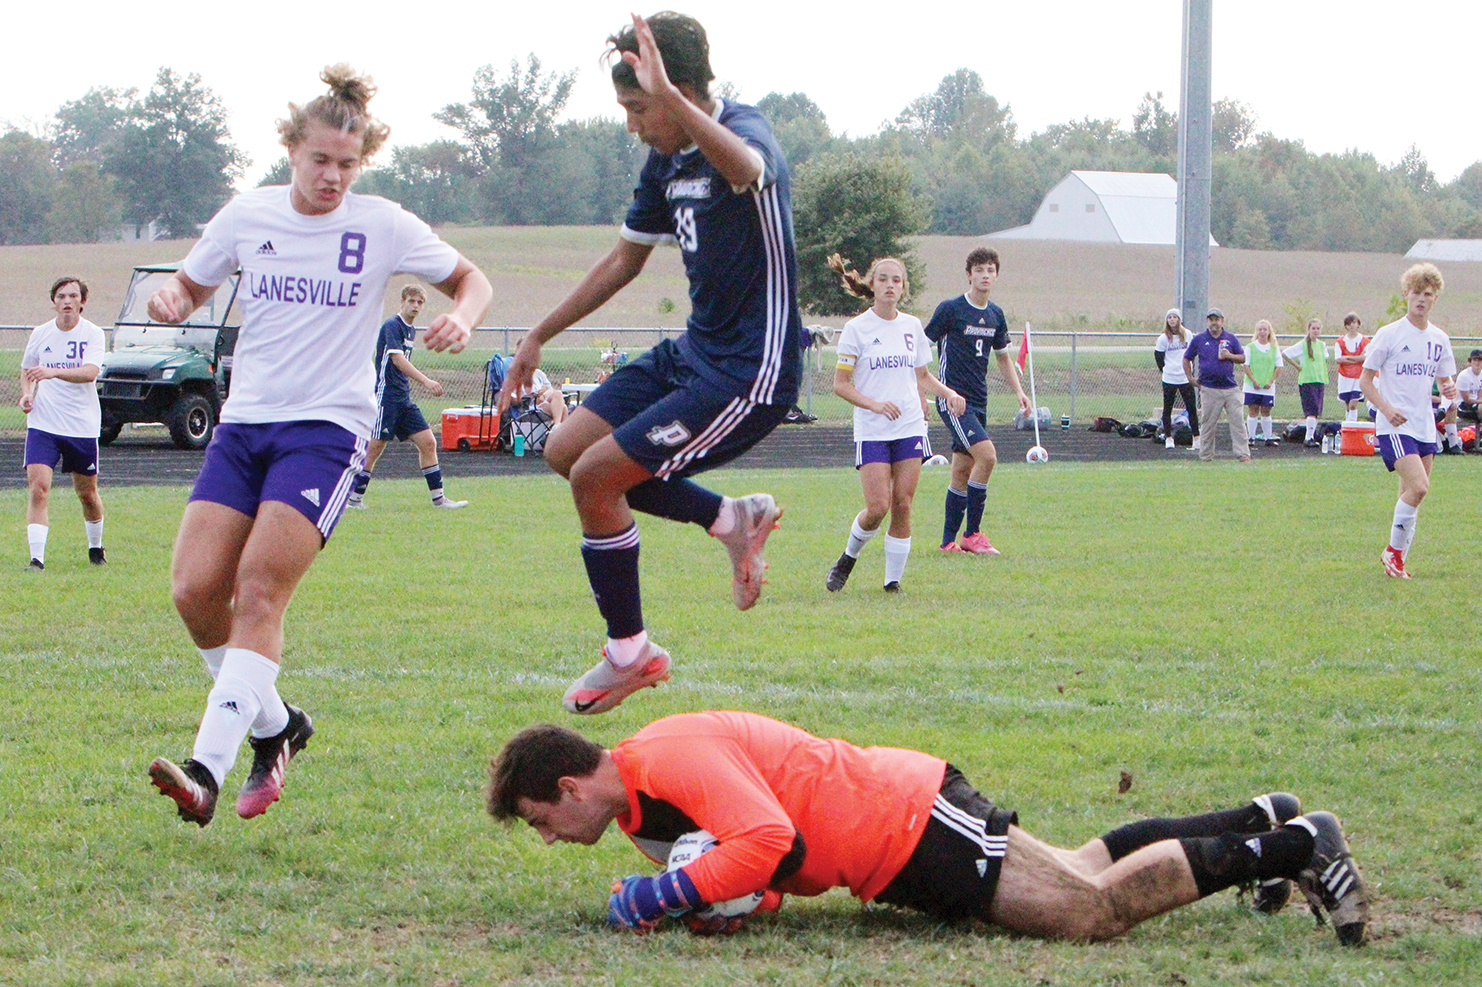 Eagles fade late against defending 1A champs